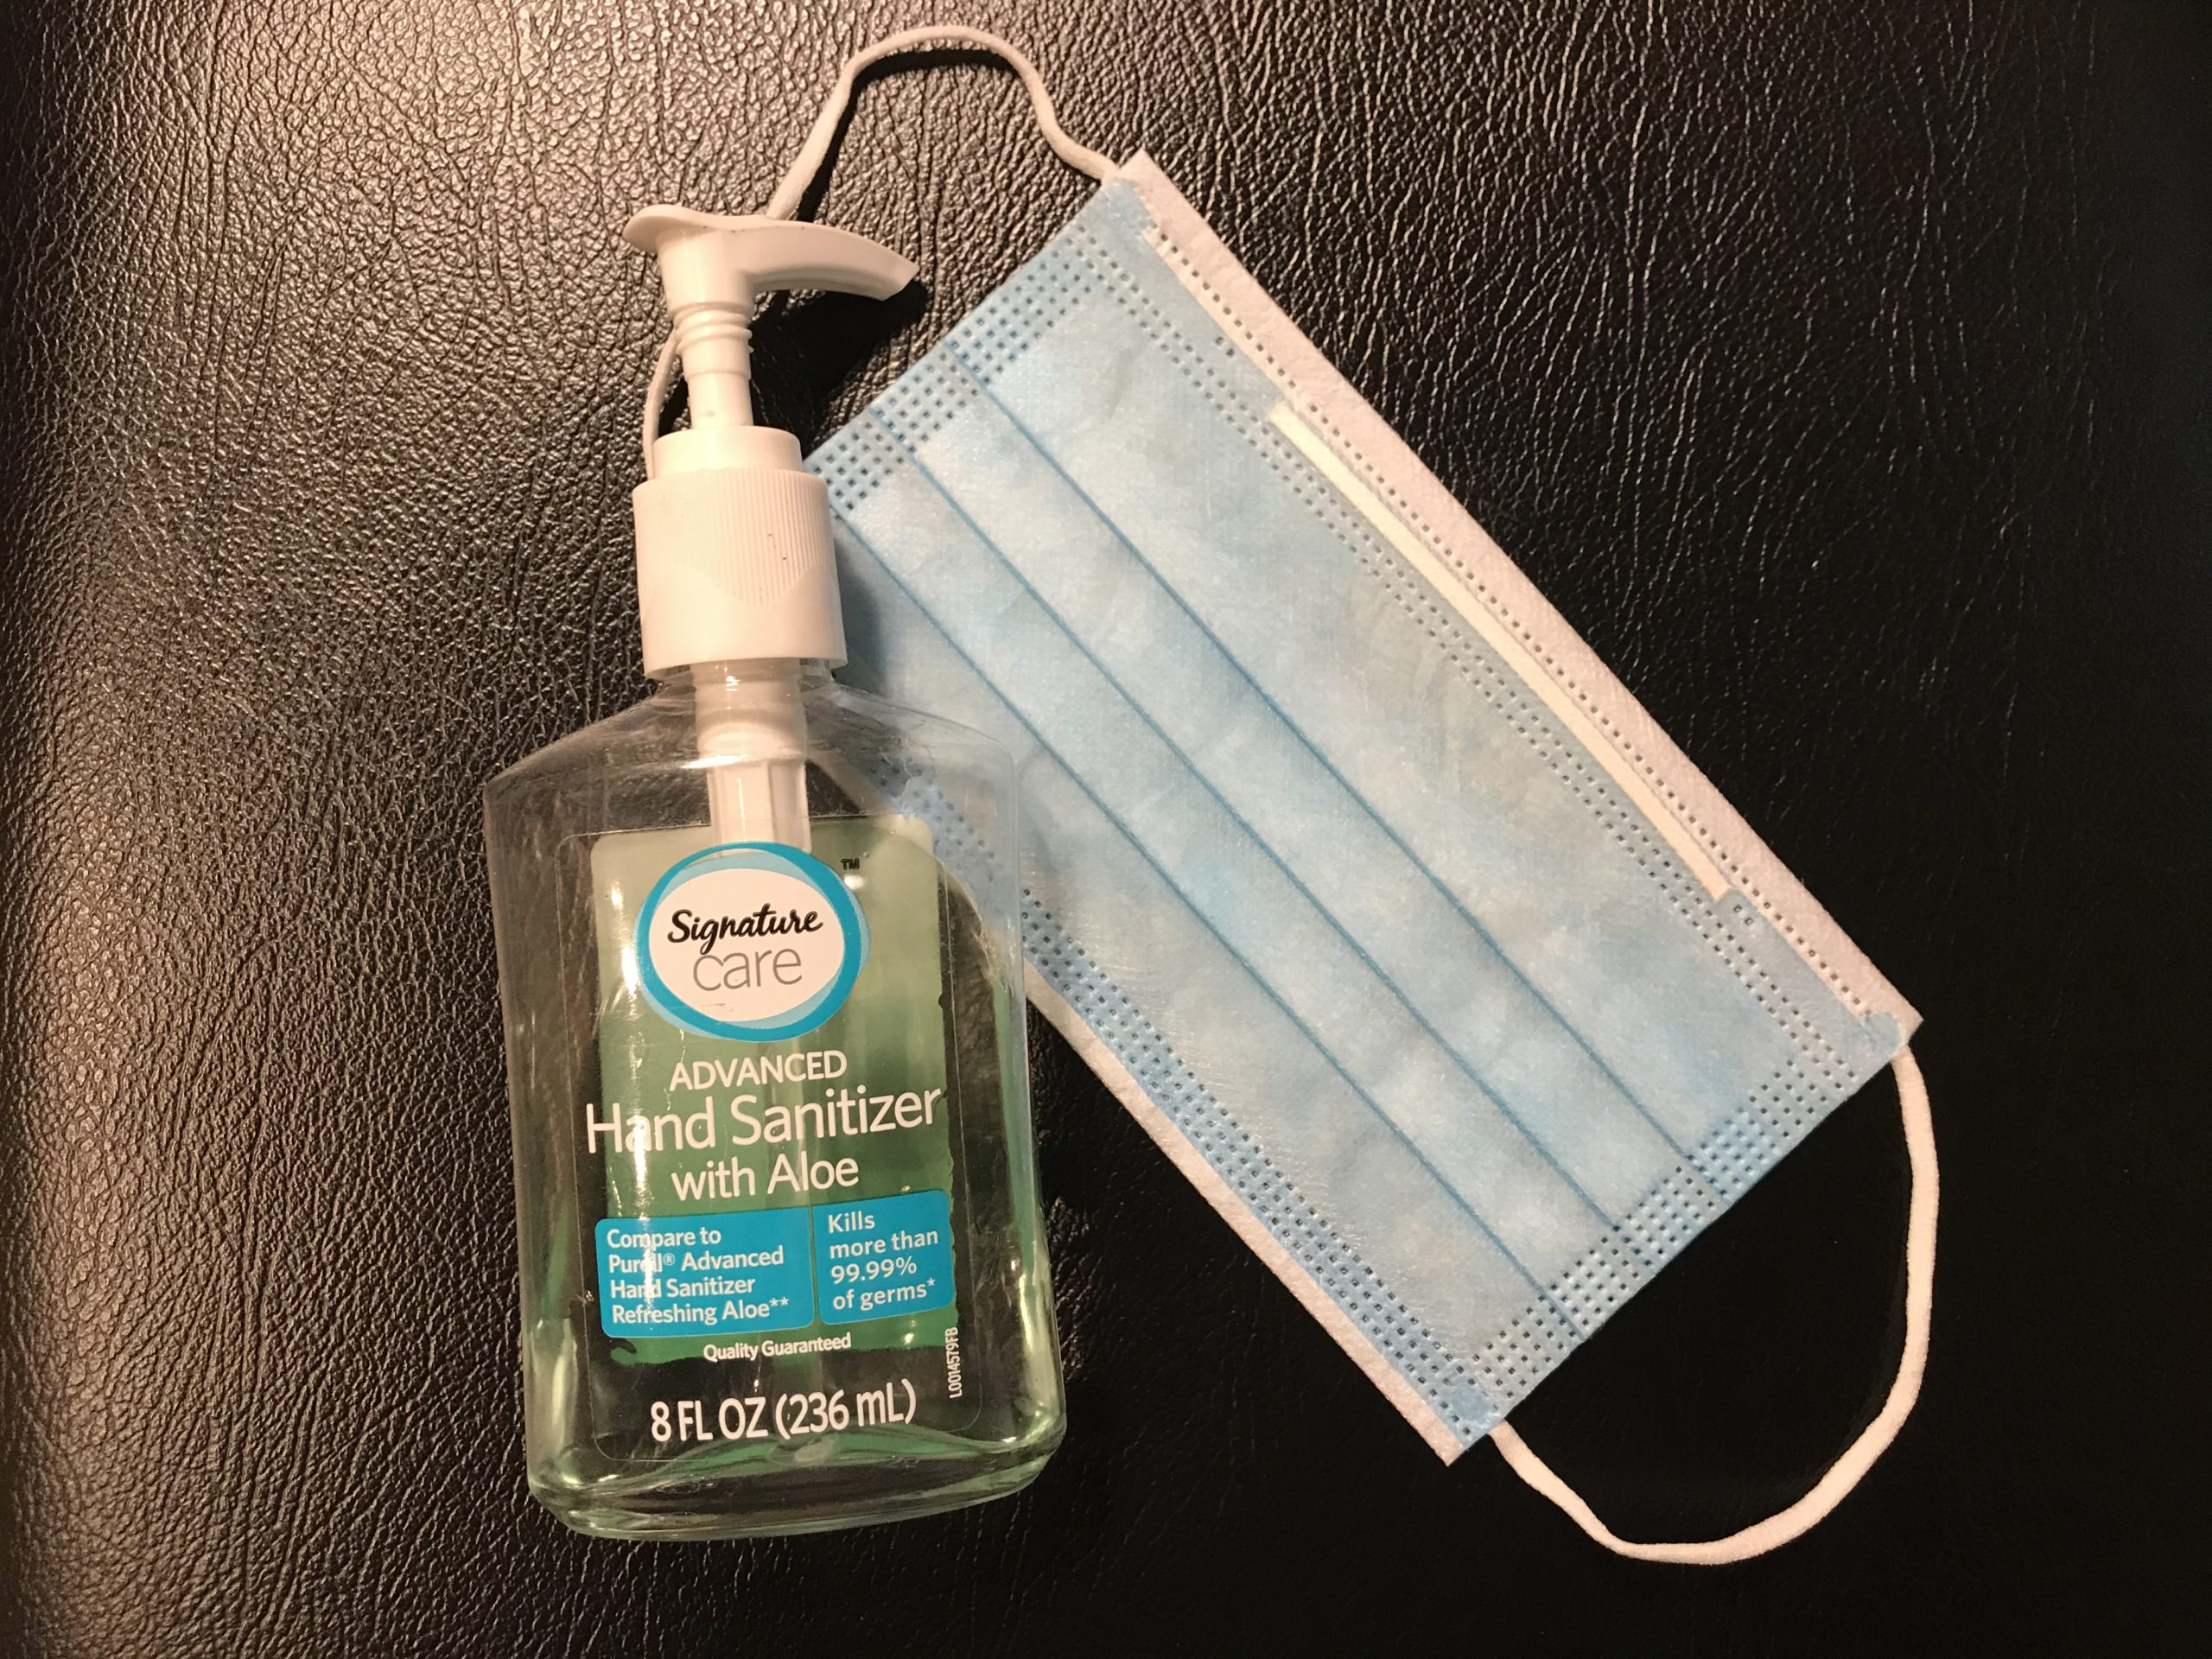 Intermask Facemasks & Safeway Hand Sanitizer